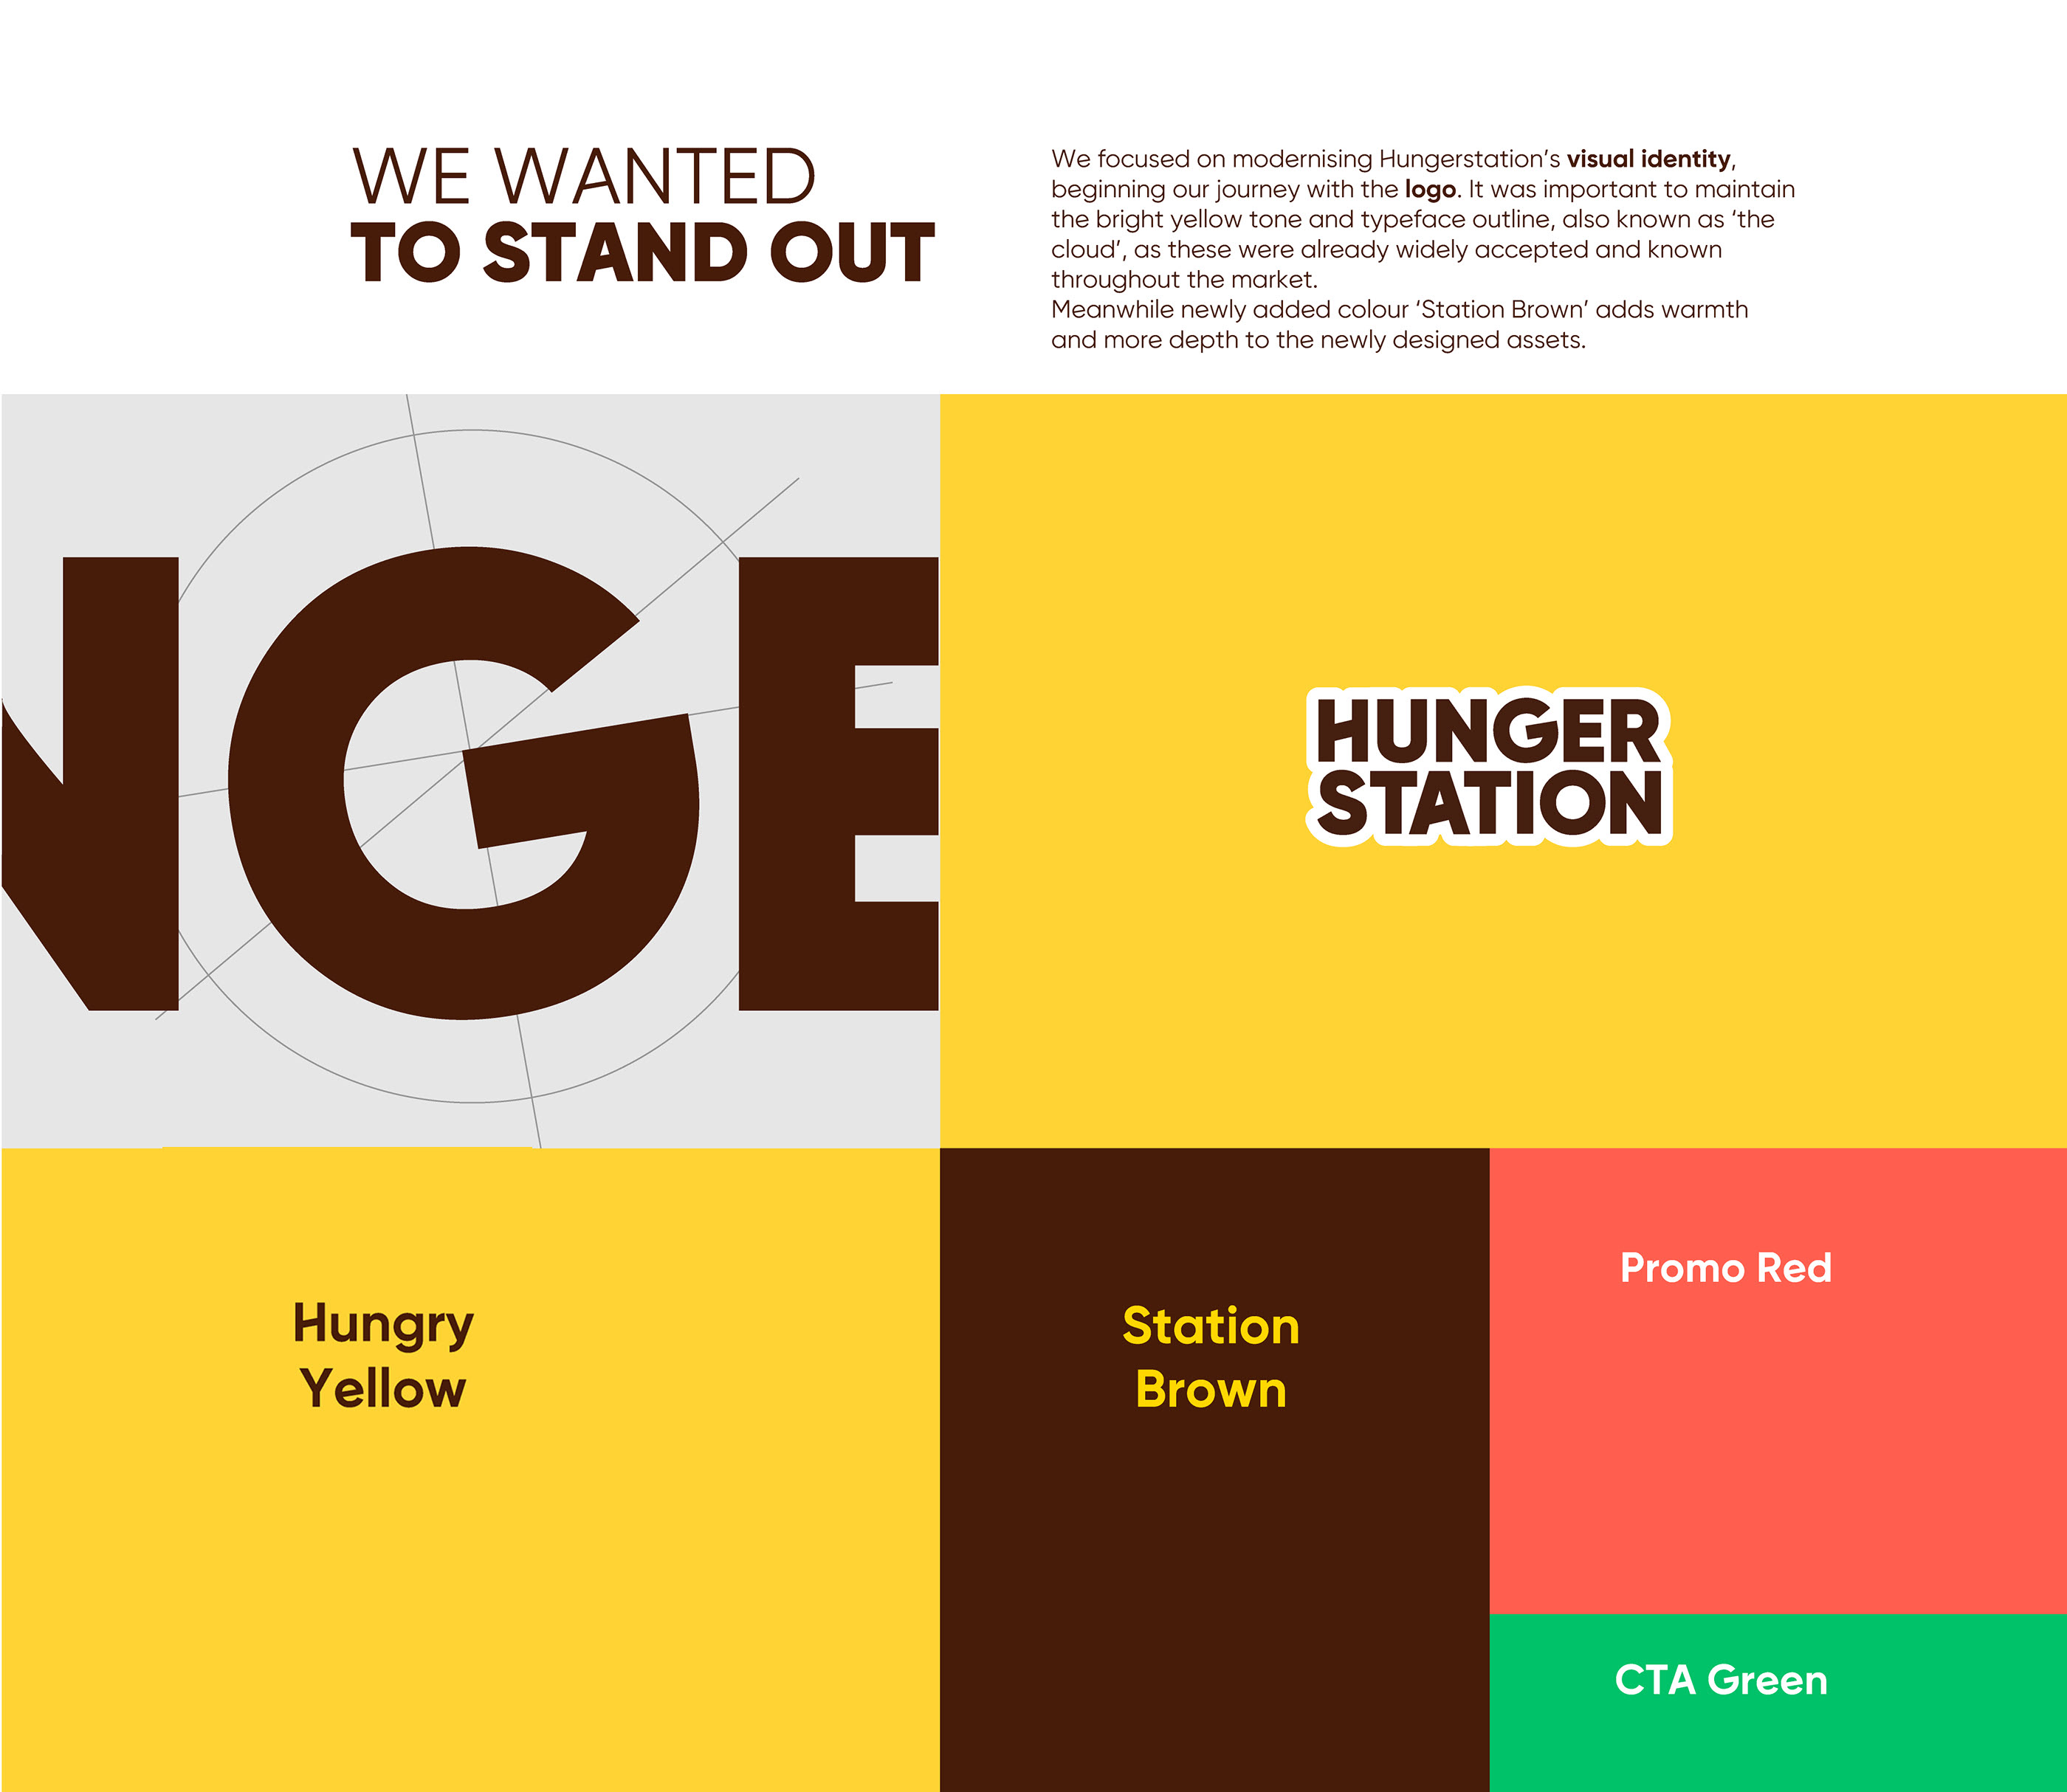 Hungerstation: Rebranding Project on Behance